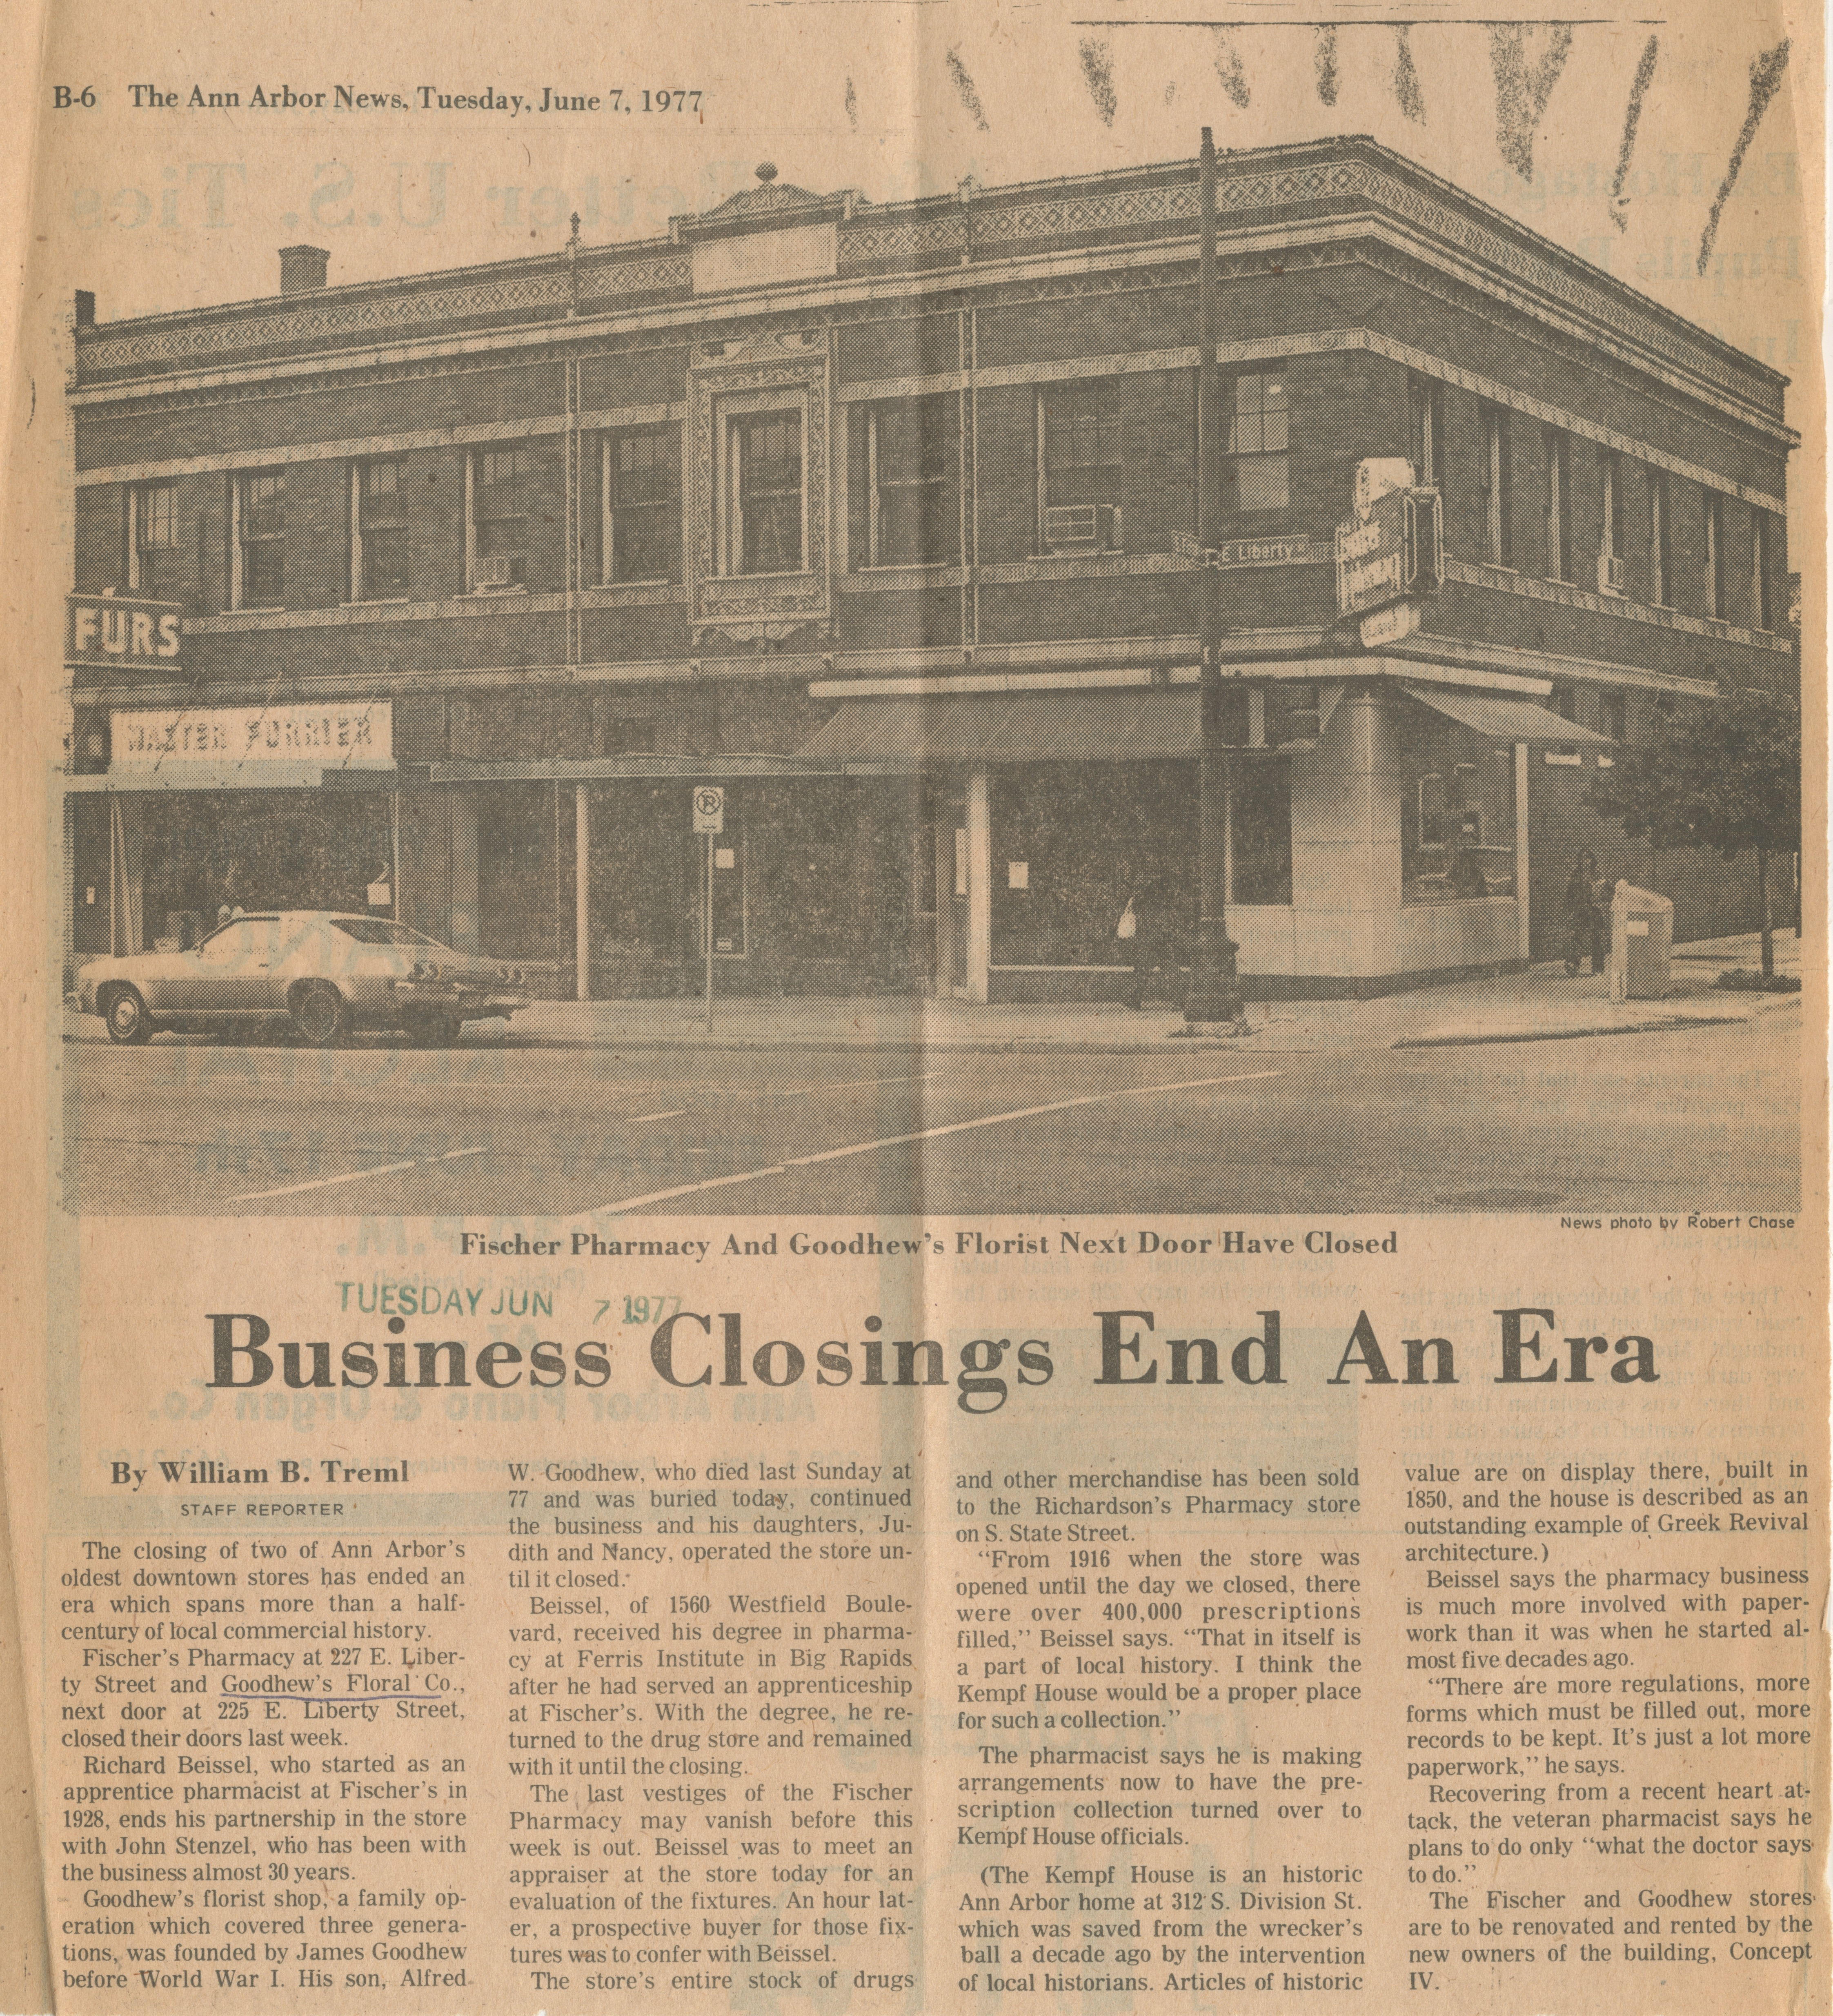 Business Closings End An Era image